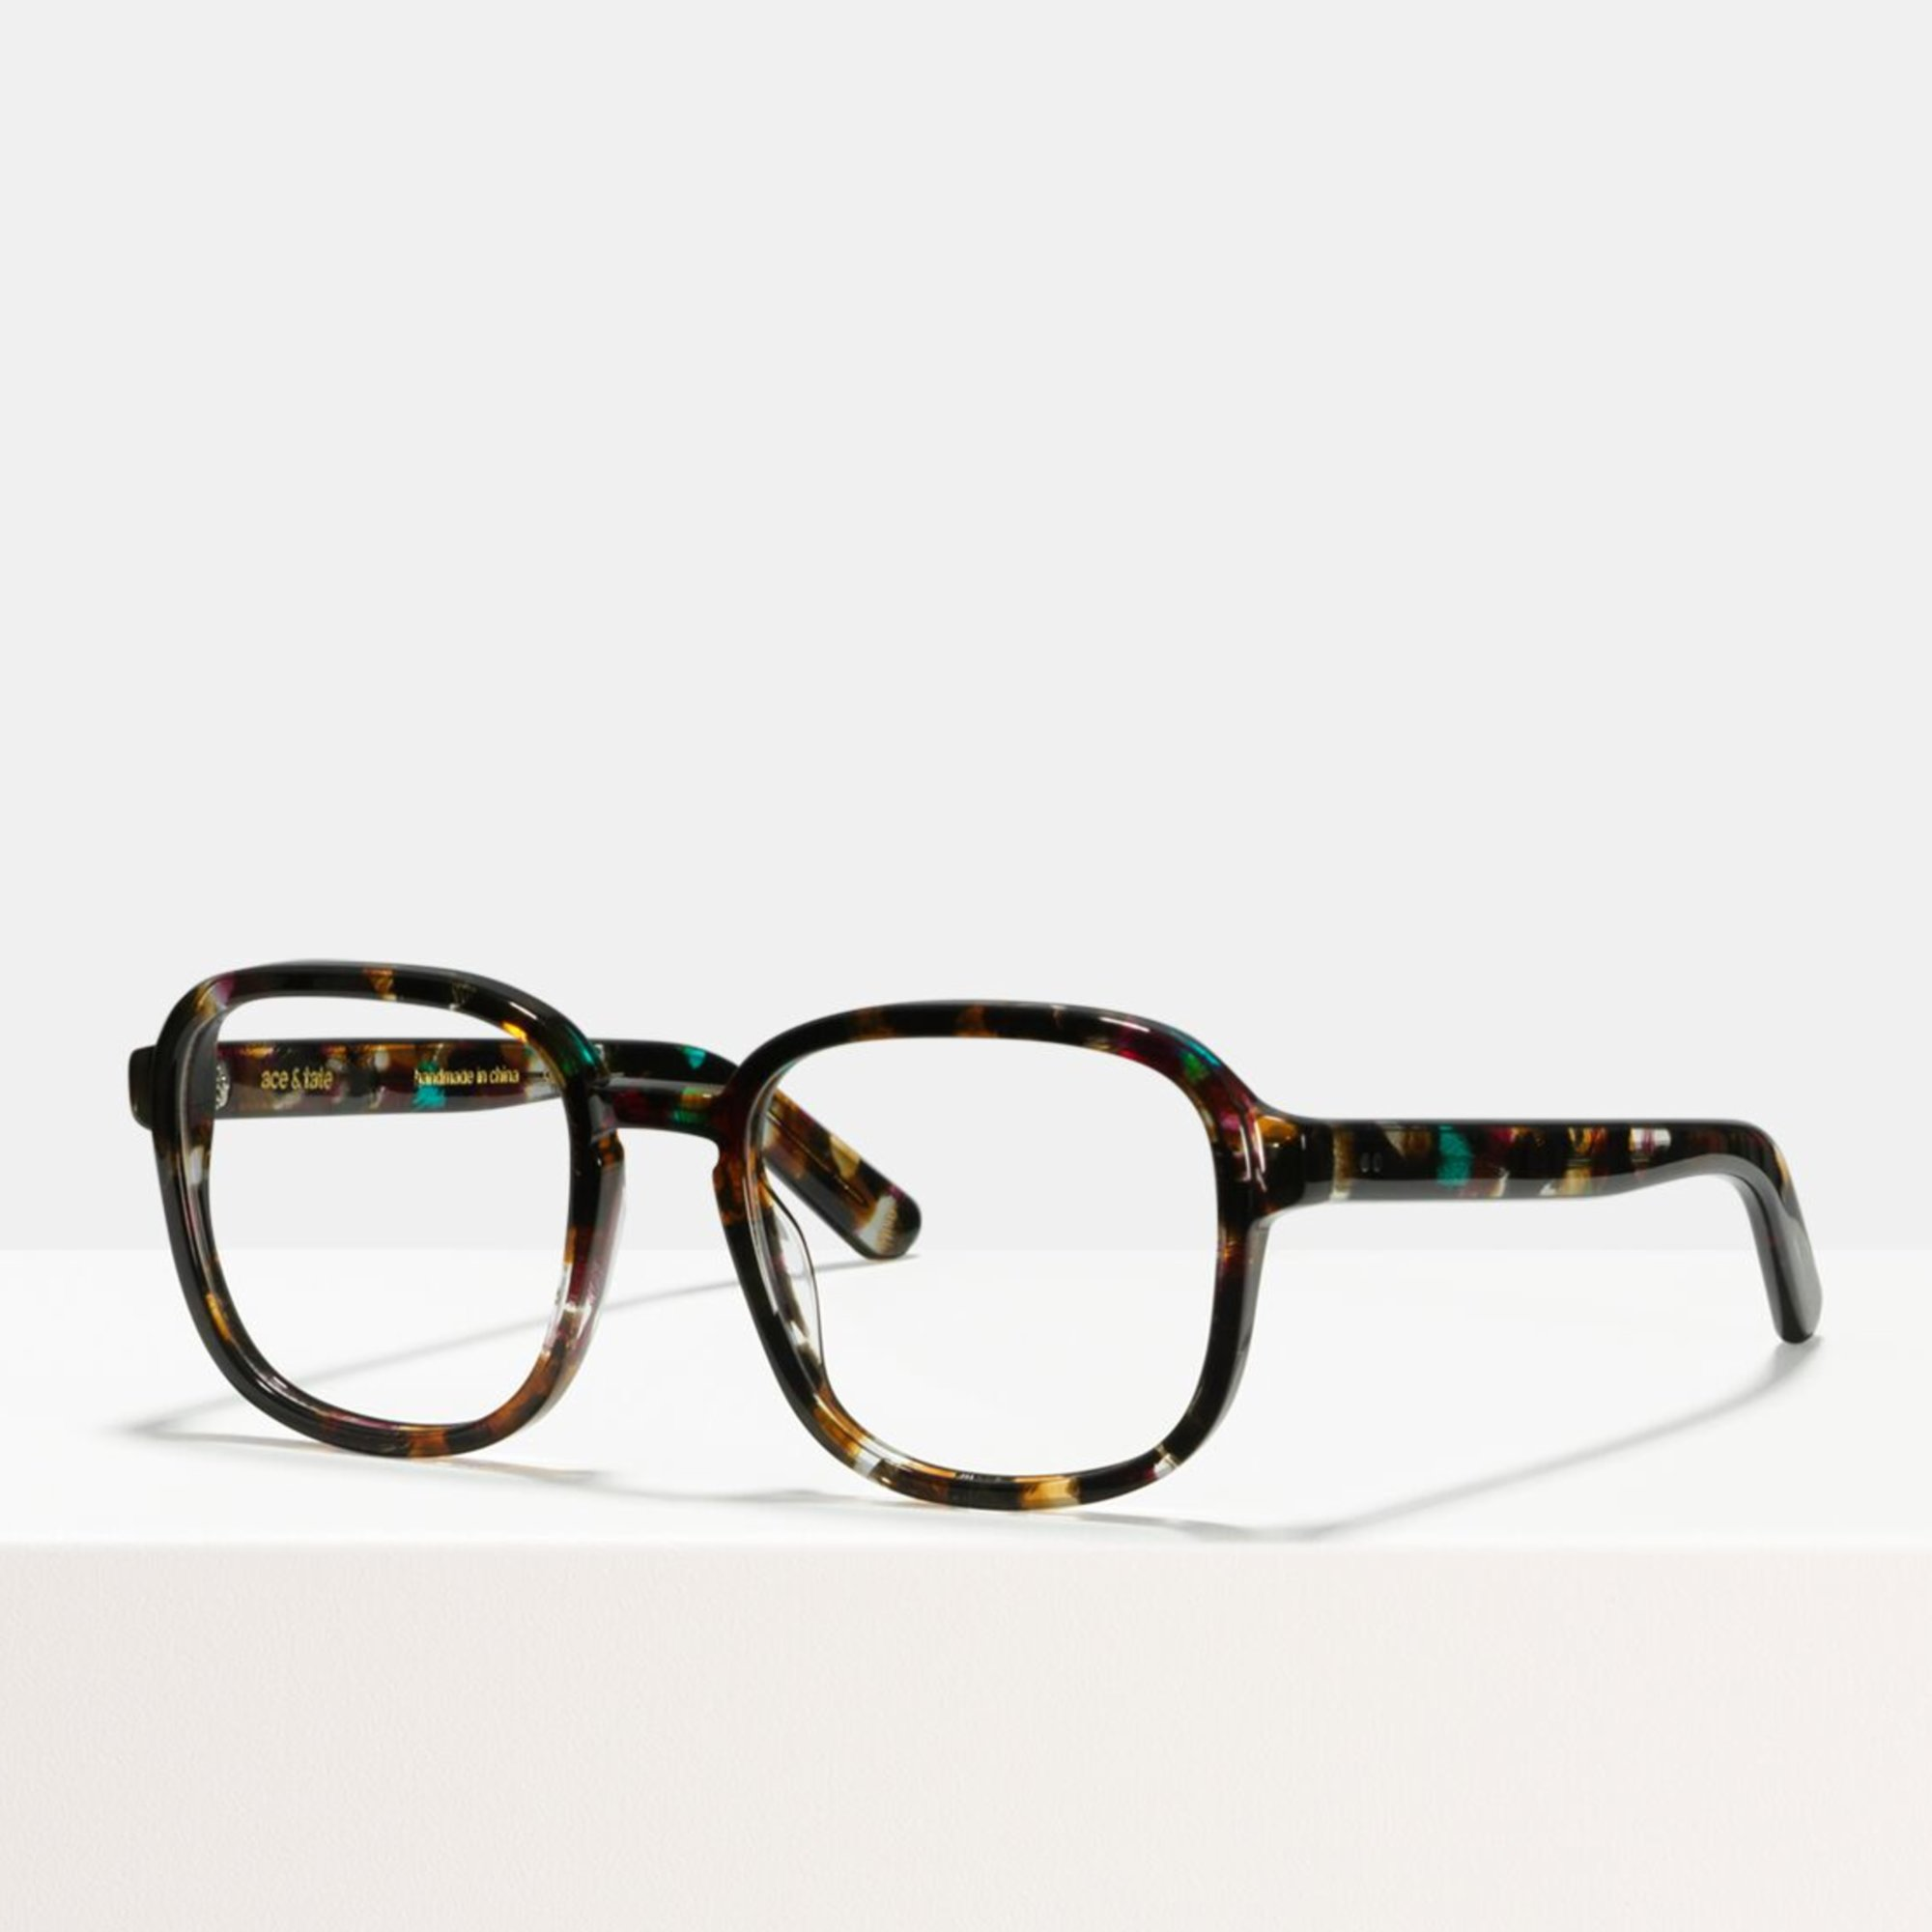 Ace & Tate Glasses | square acetate in Brown, Black, Blue, Pink